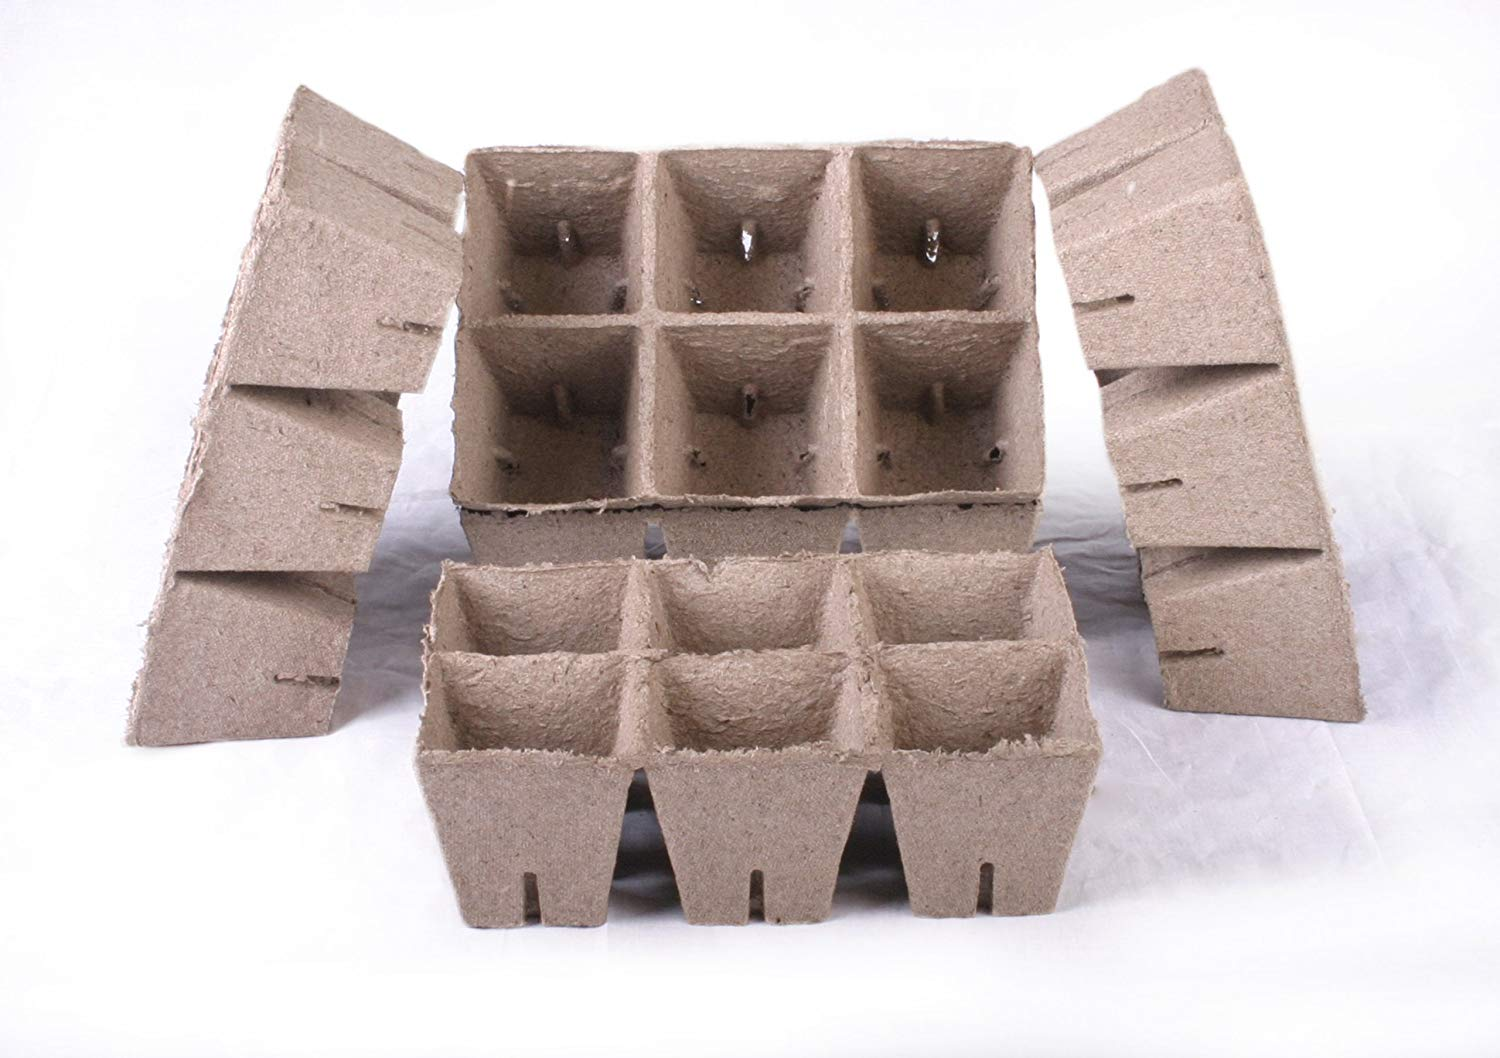 150 NEW Square Jiffy Peat Pots Size 3x3 - Strips ~ Pots Are 3 Inch Square At the Top and 3 Inch Deep.